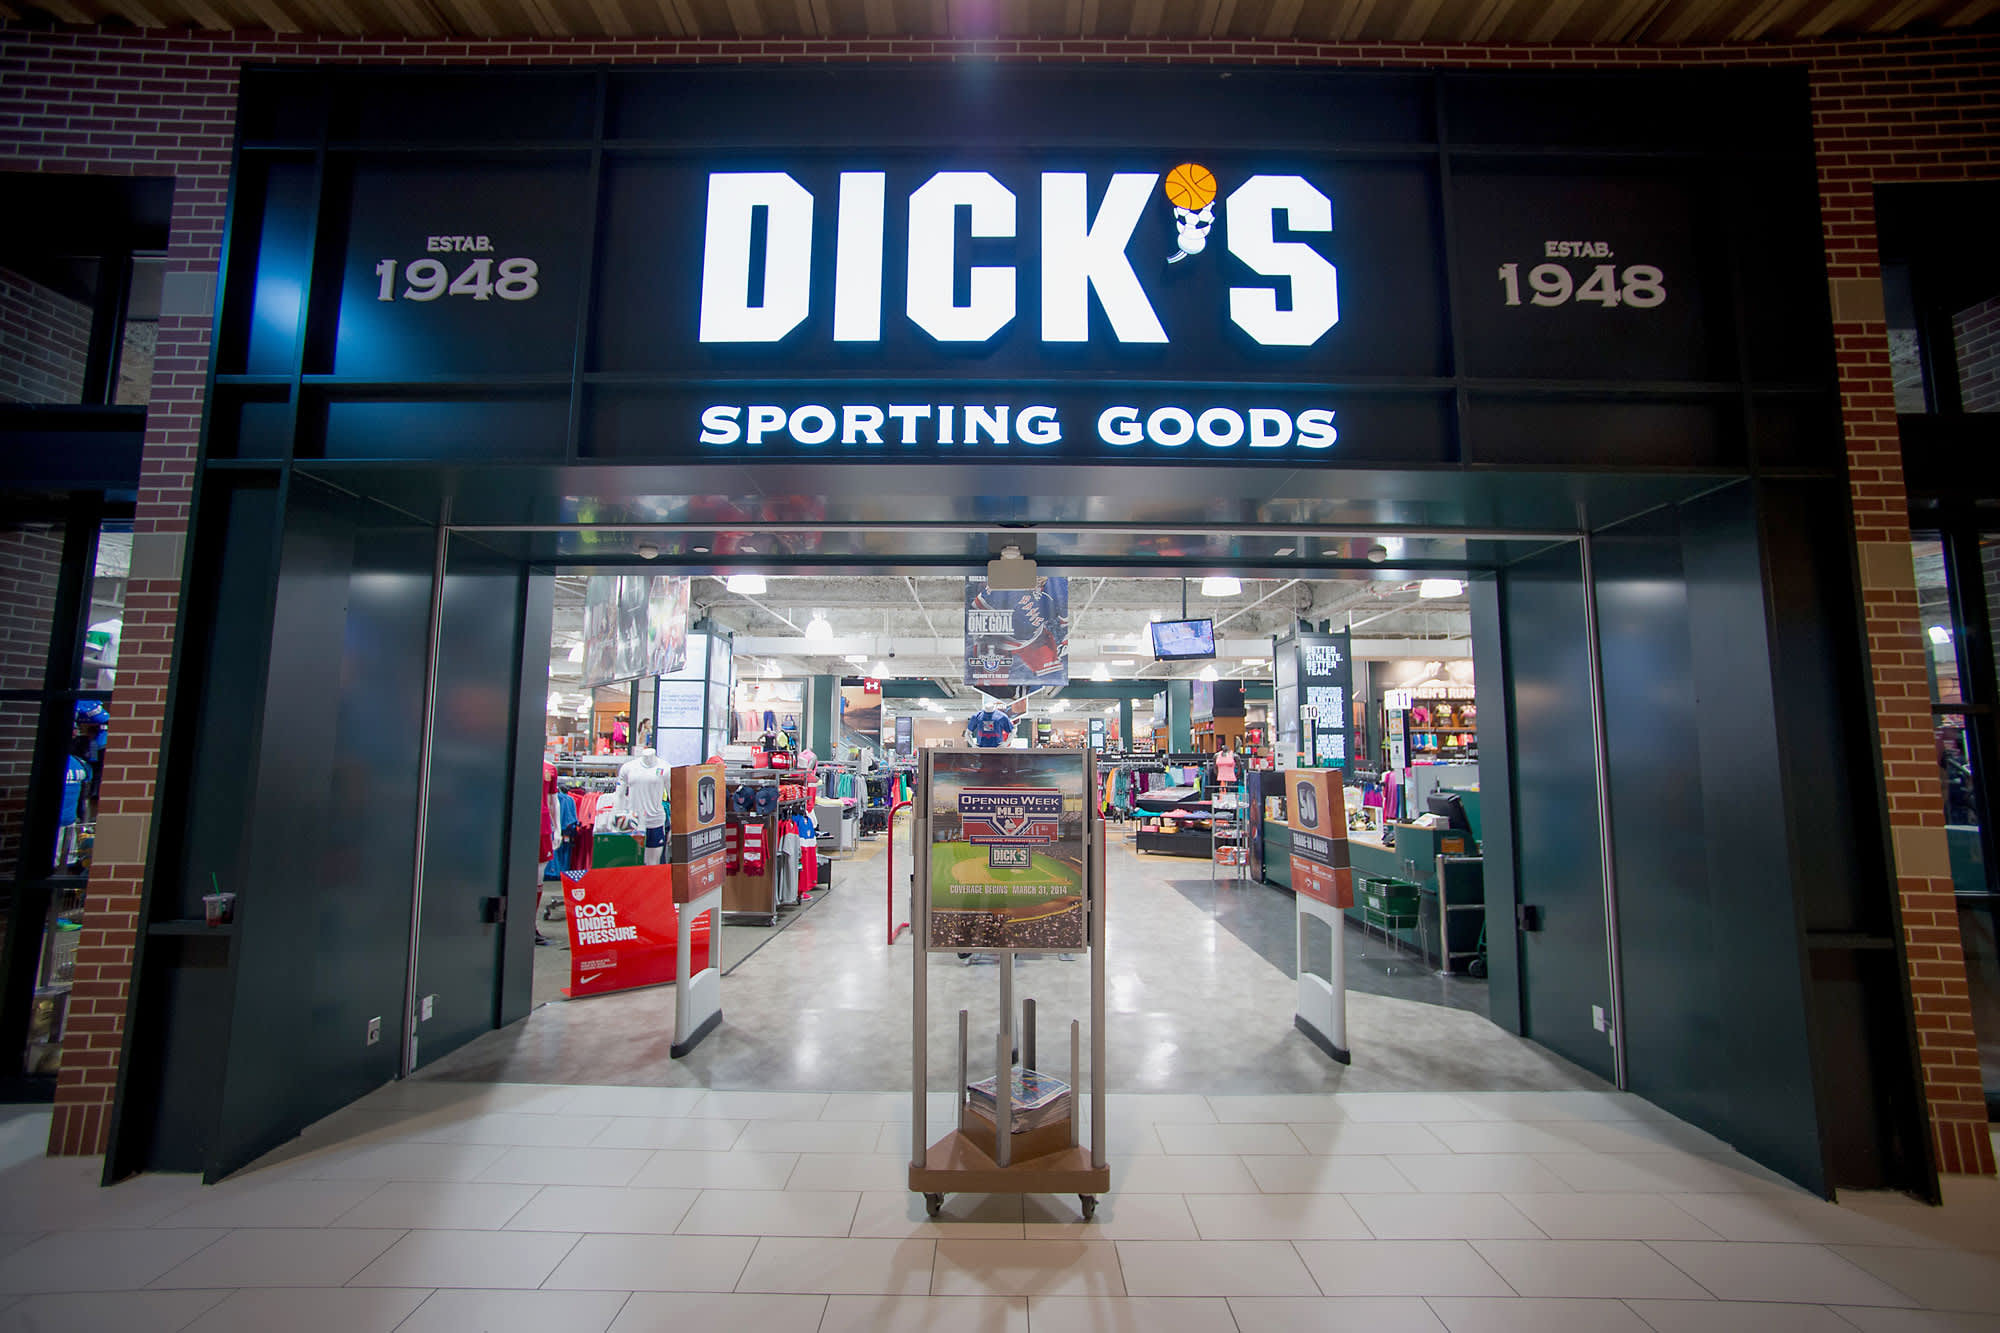 Dick's Sporting Goods (DKS) Q4 2020 earnings